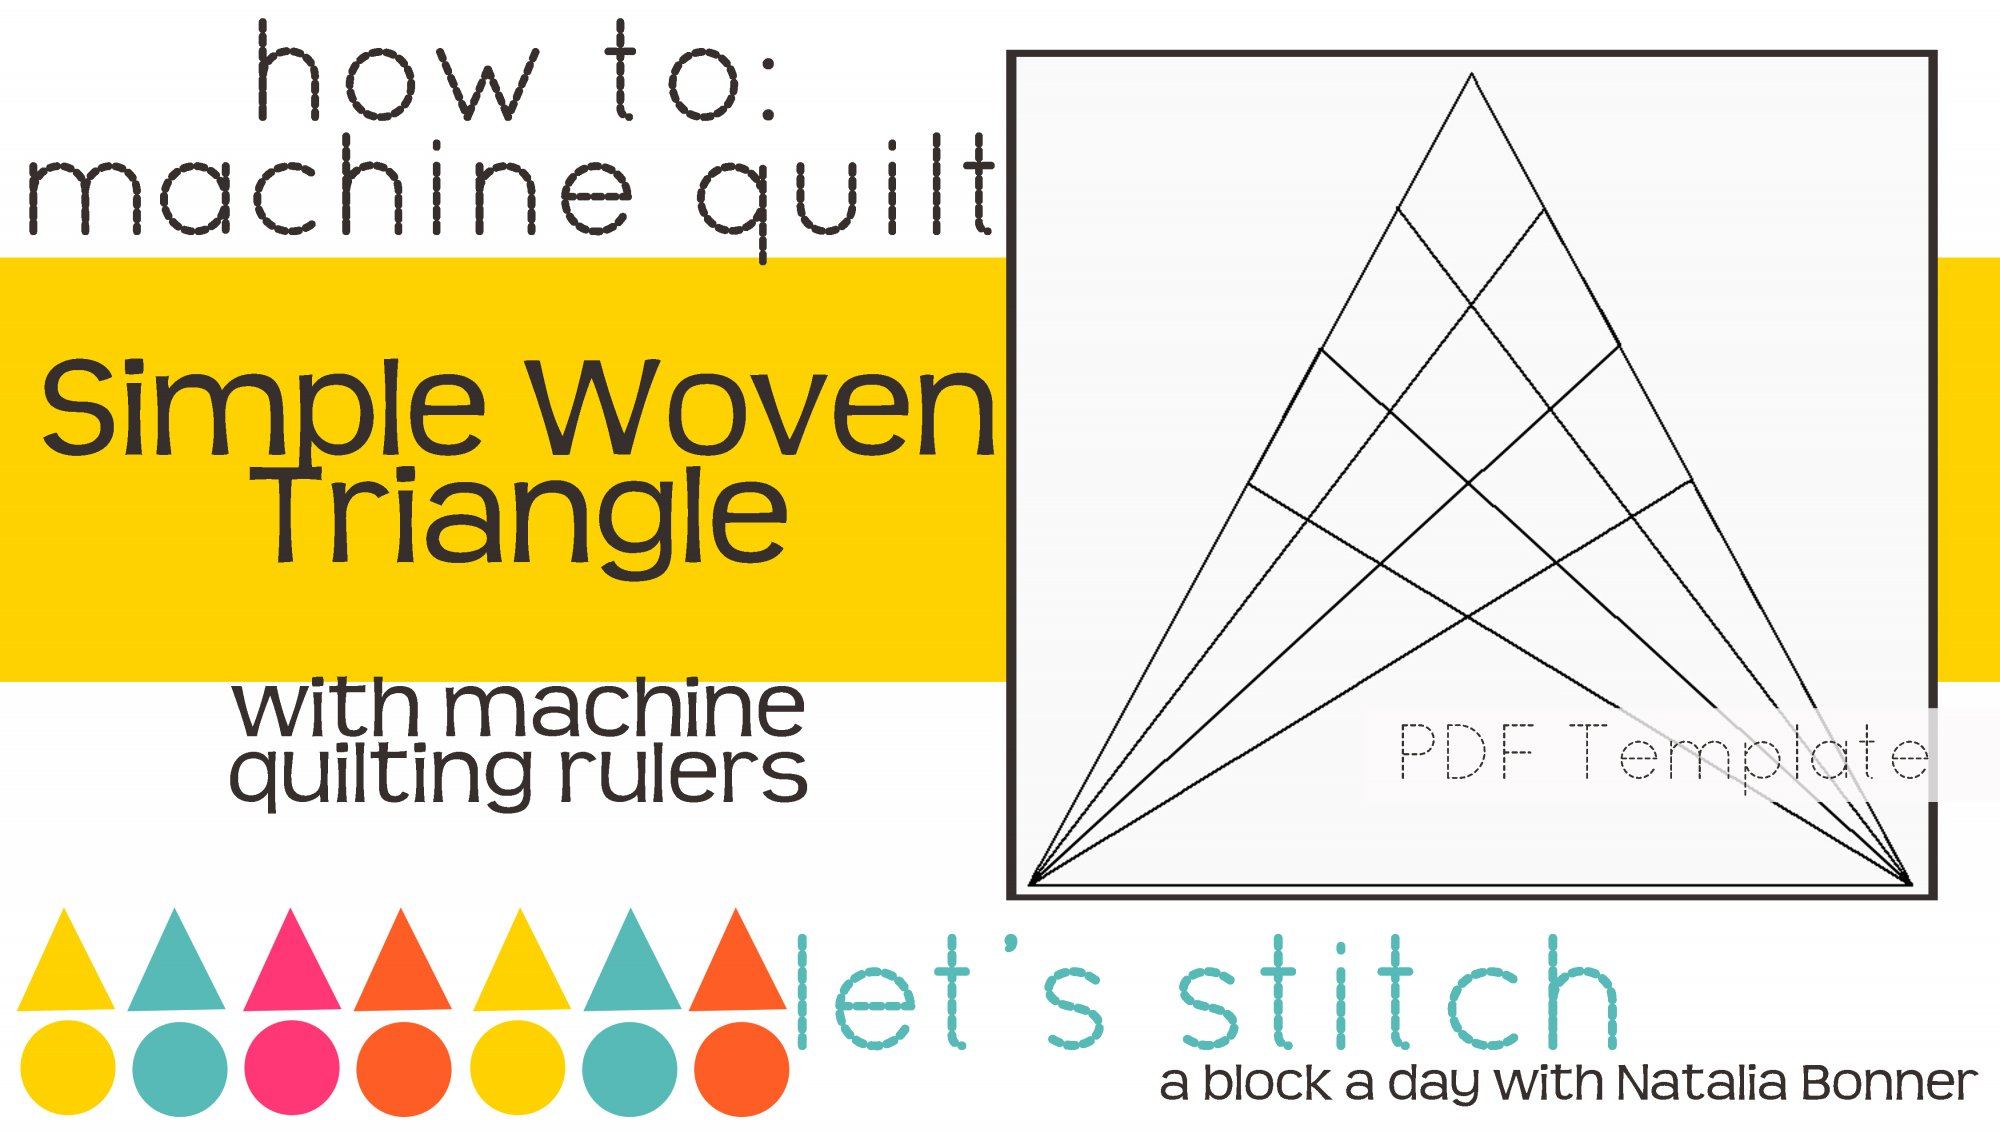 Let's Stitch - A Block a Day With Natalia Bonner - PDF - Simple Woven Triangle